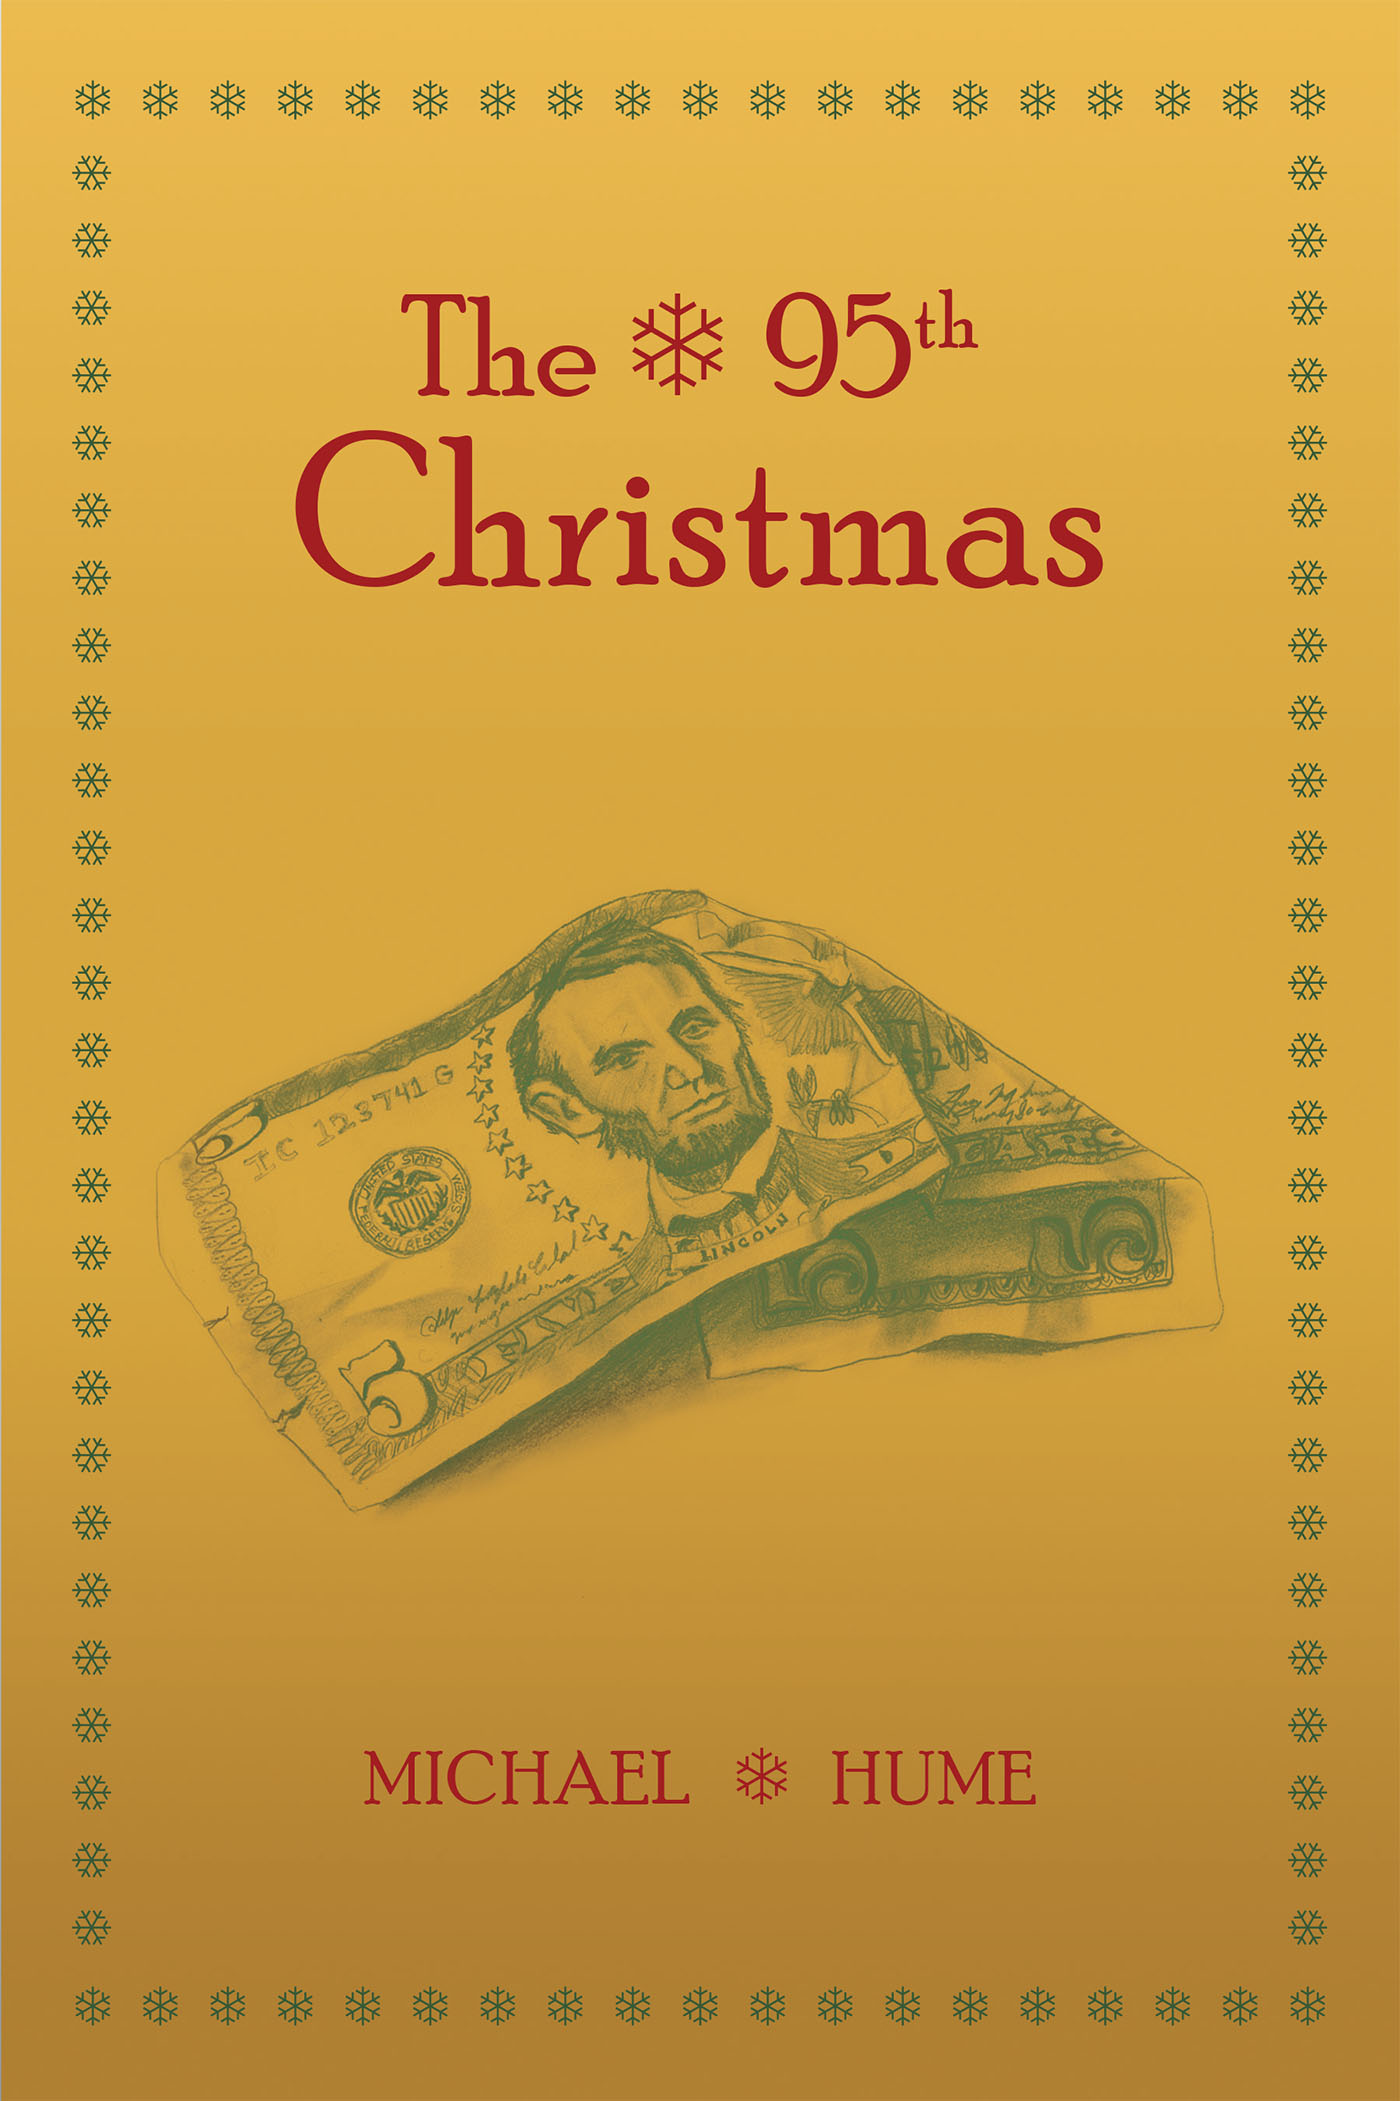 The 95th Christmas